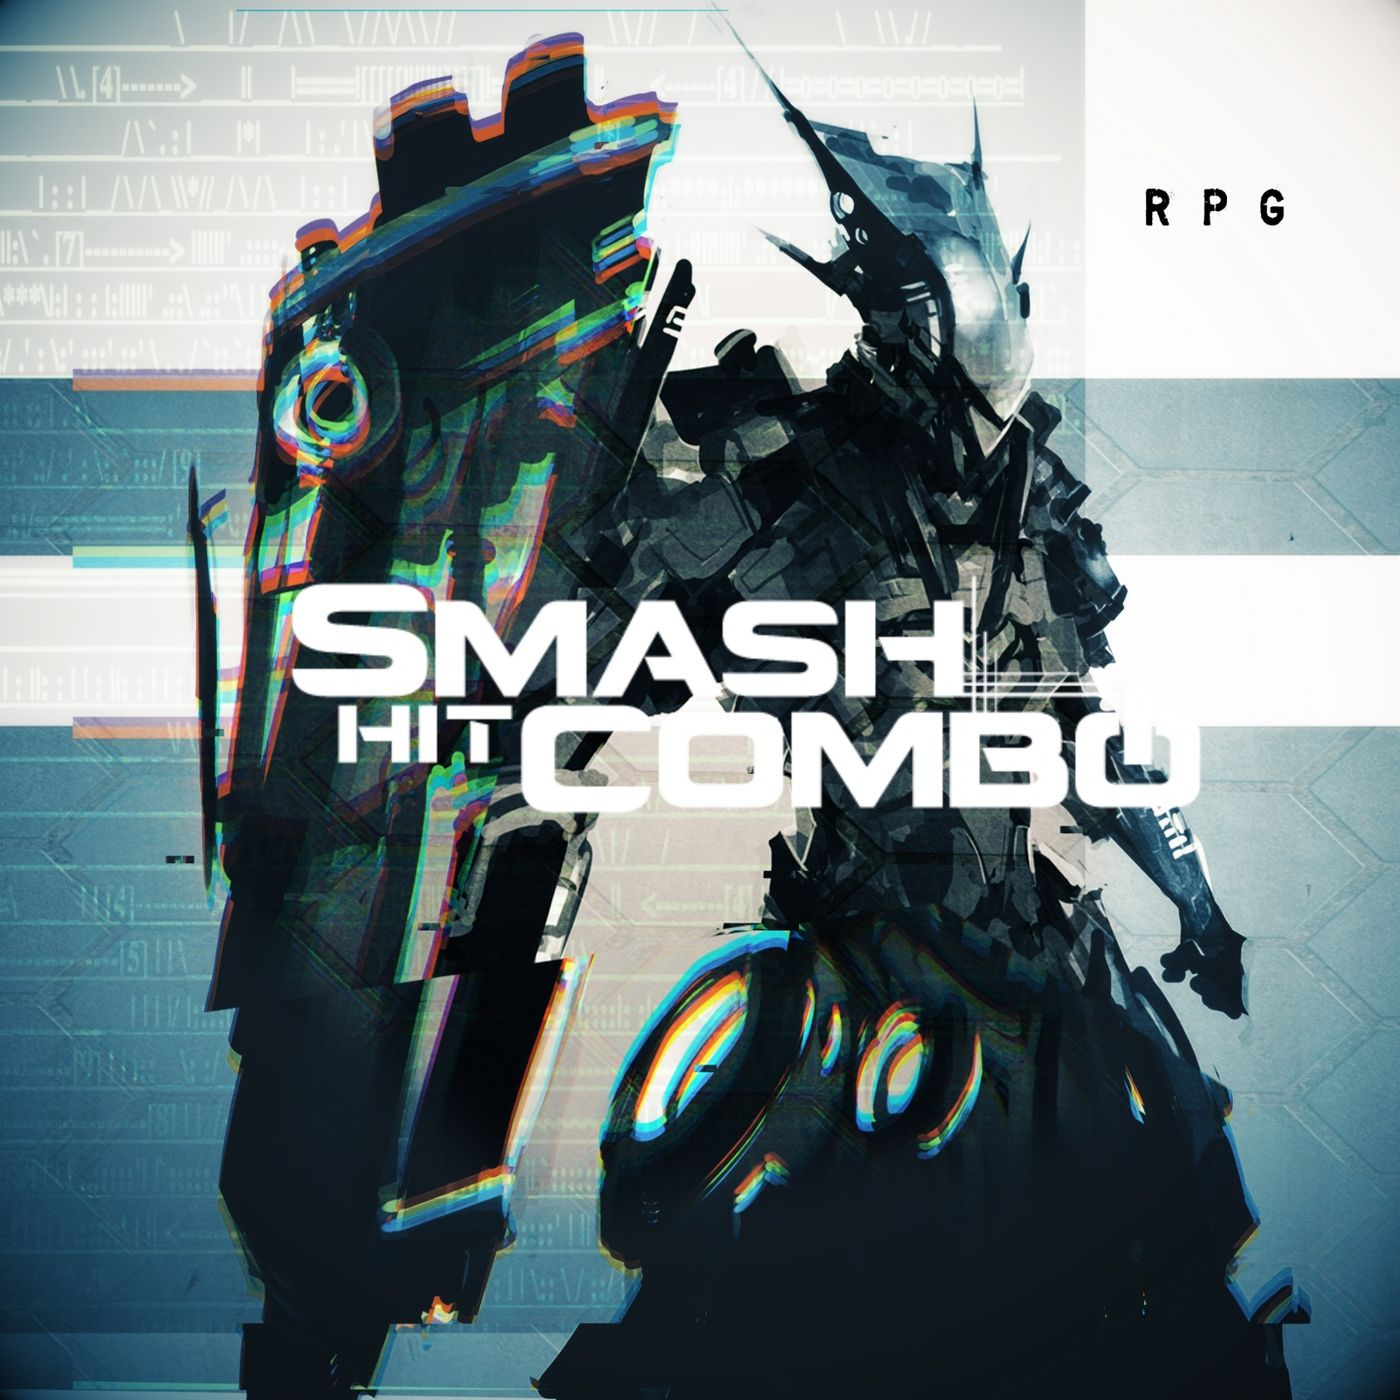 Smash Hit Combo - RPG [single] (2017)